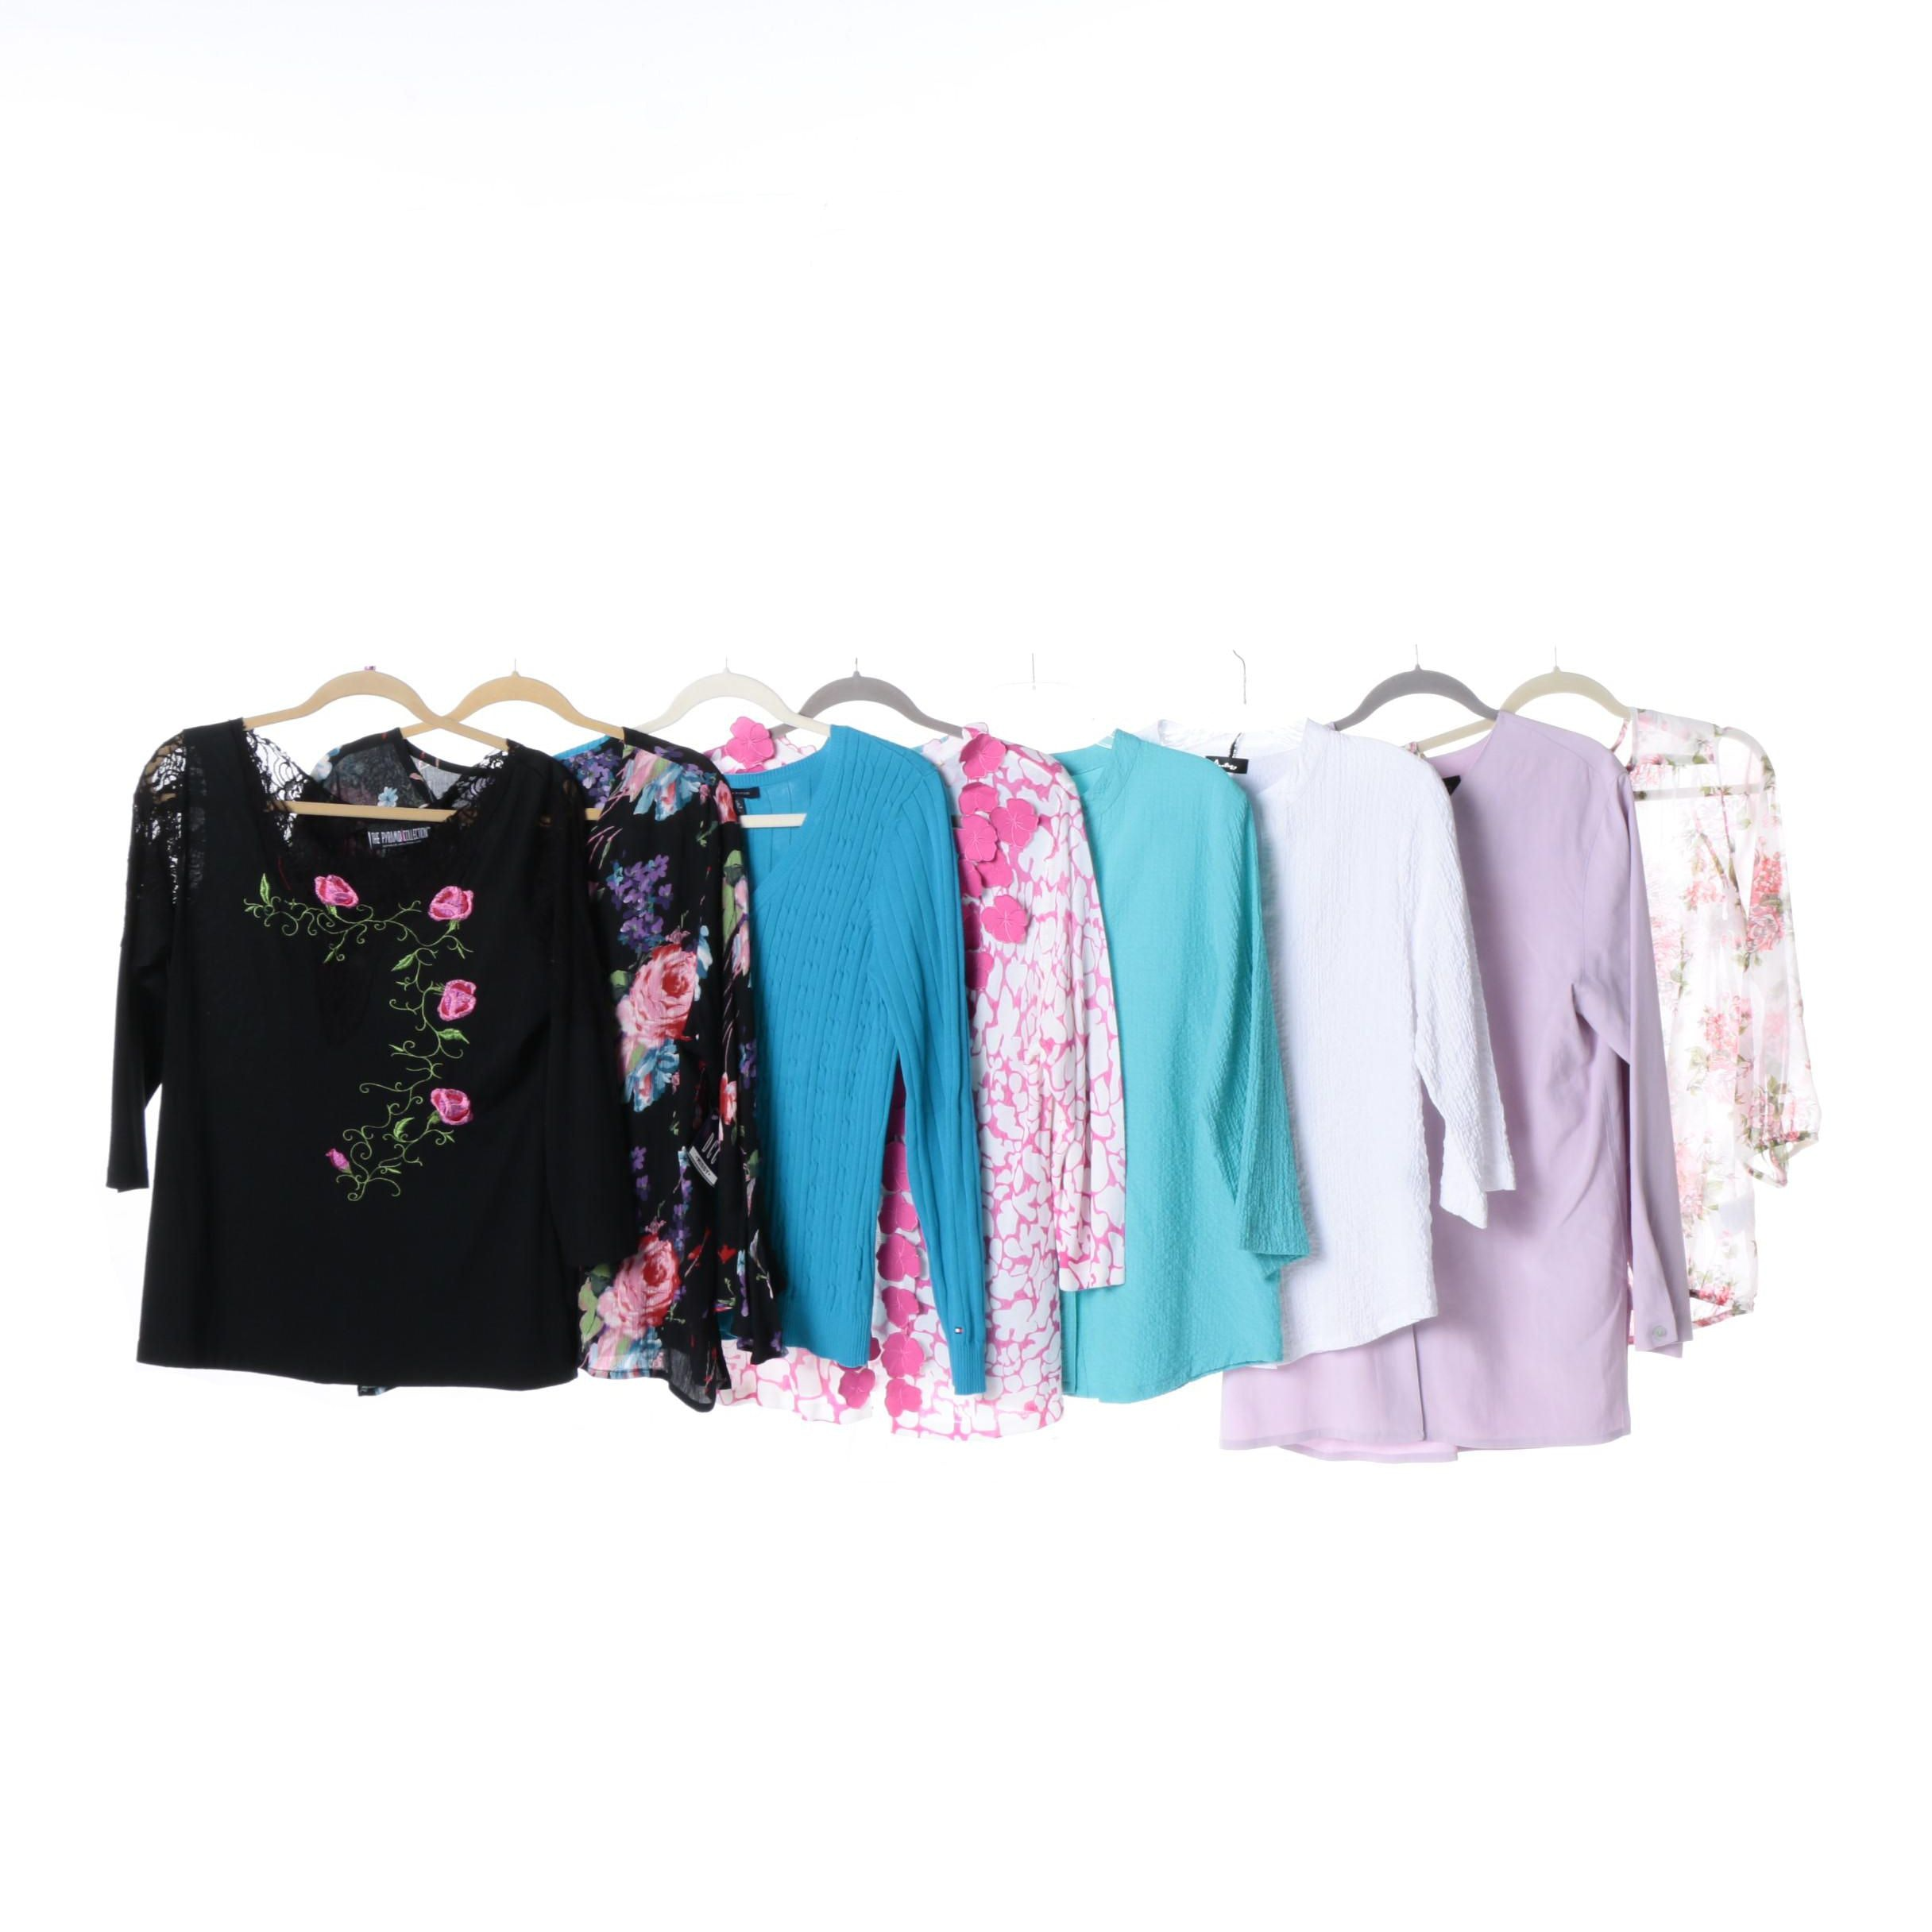 Women's Assorted Tops and Knits Including Tommy Hilfiger